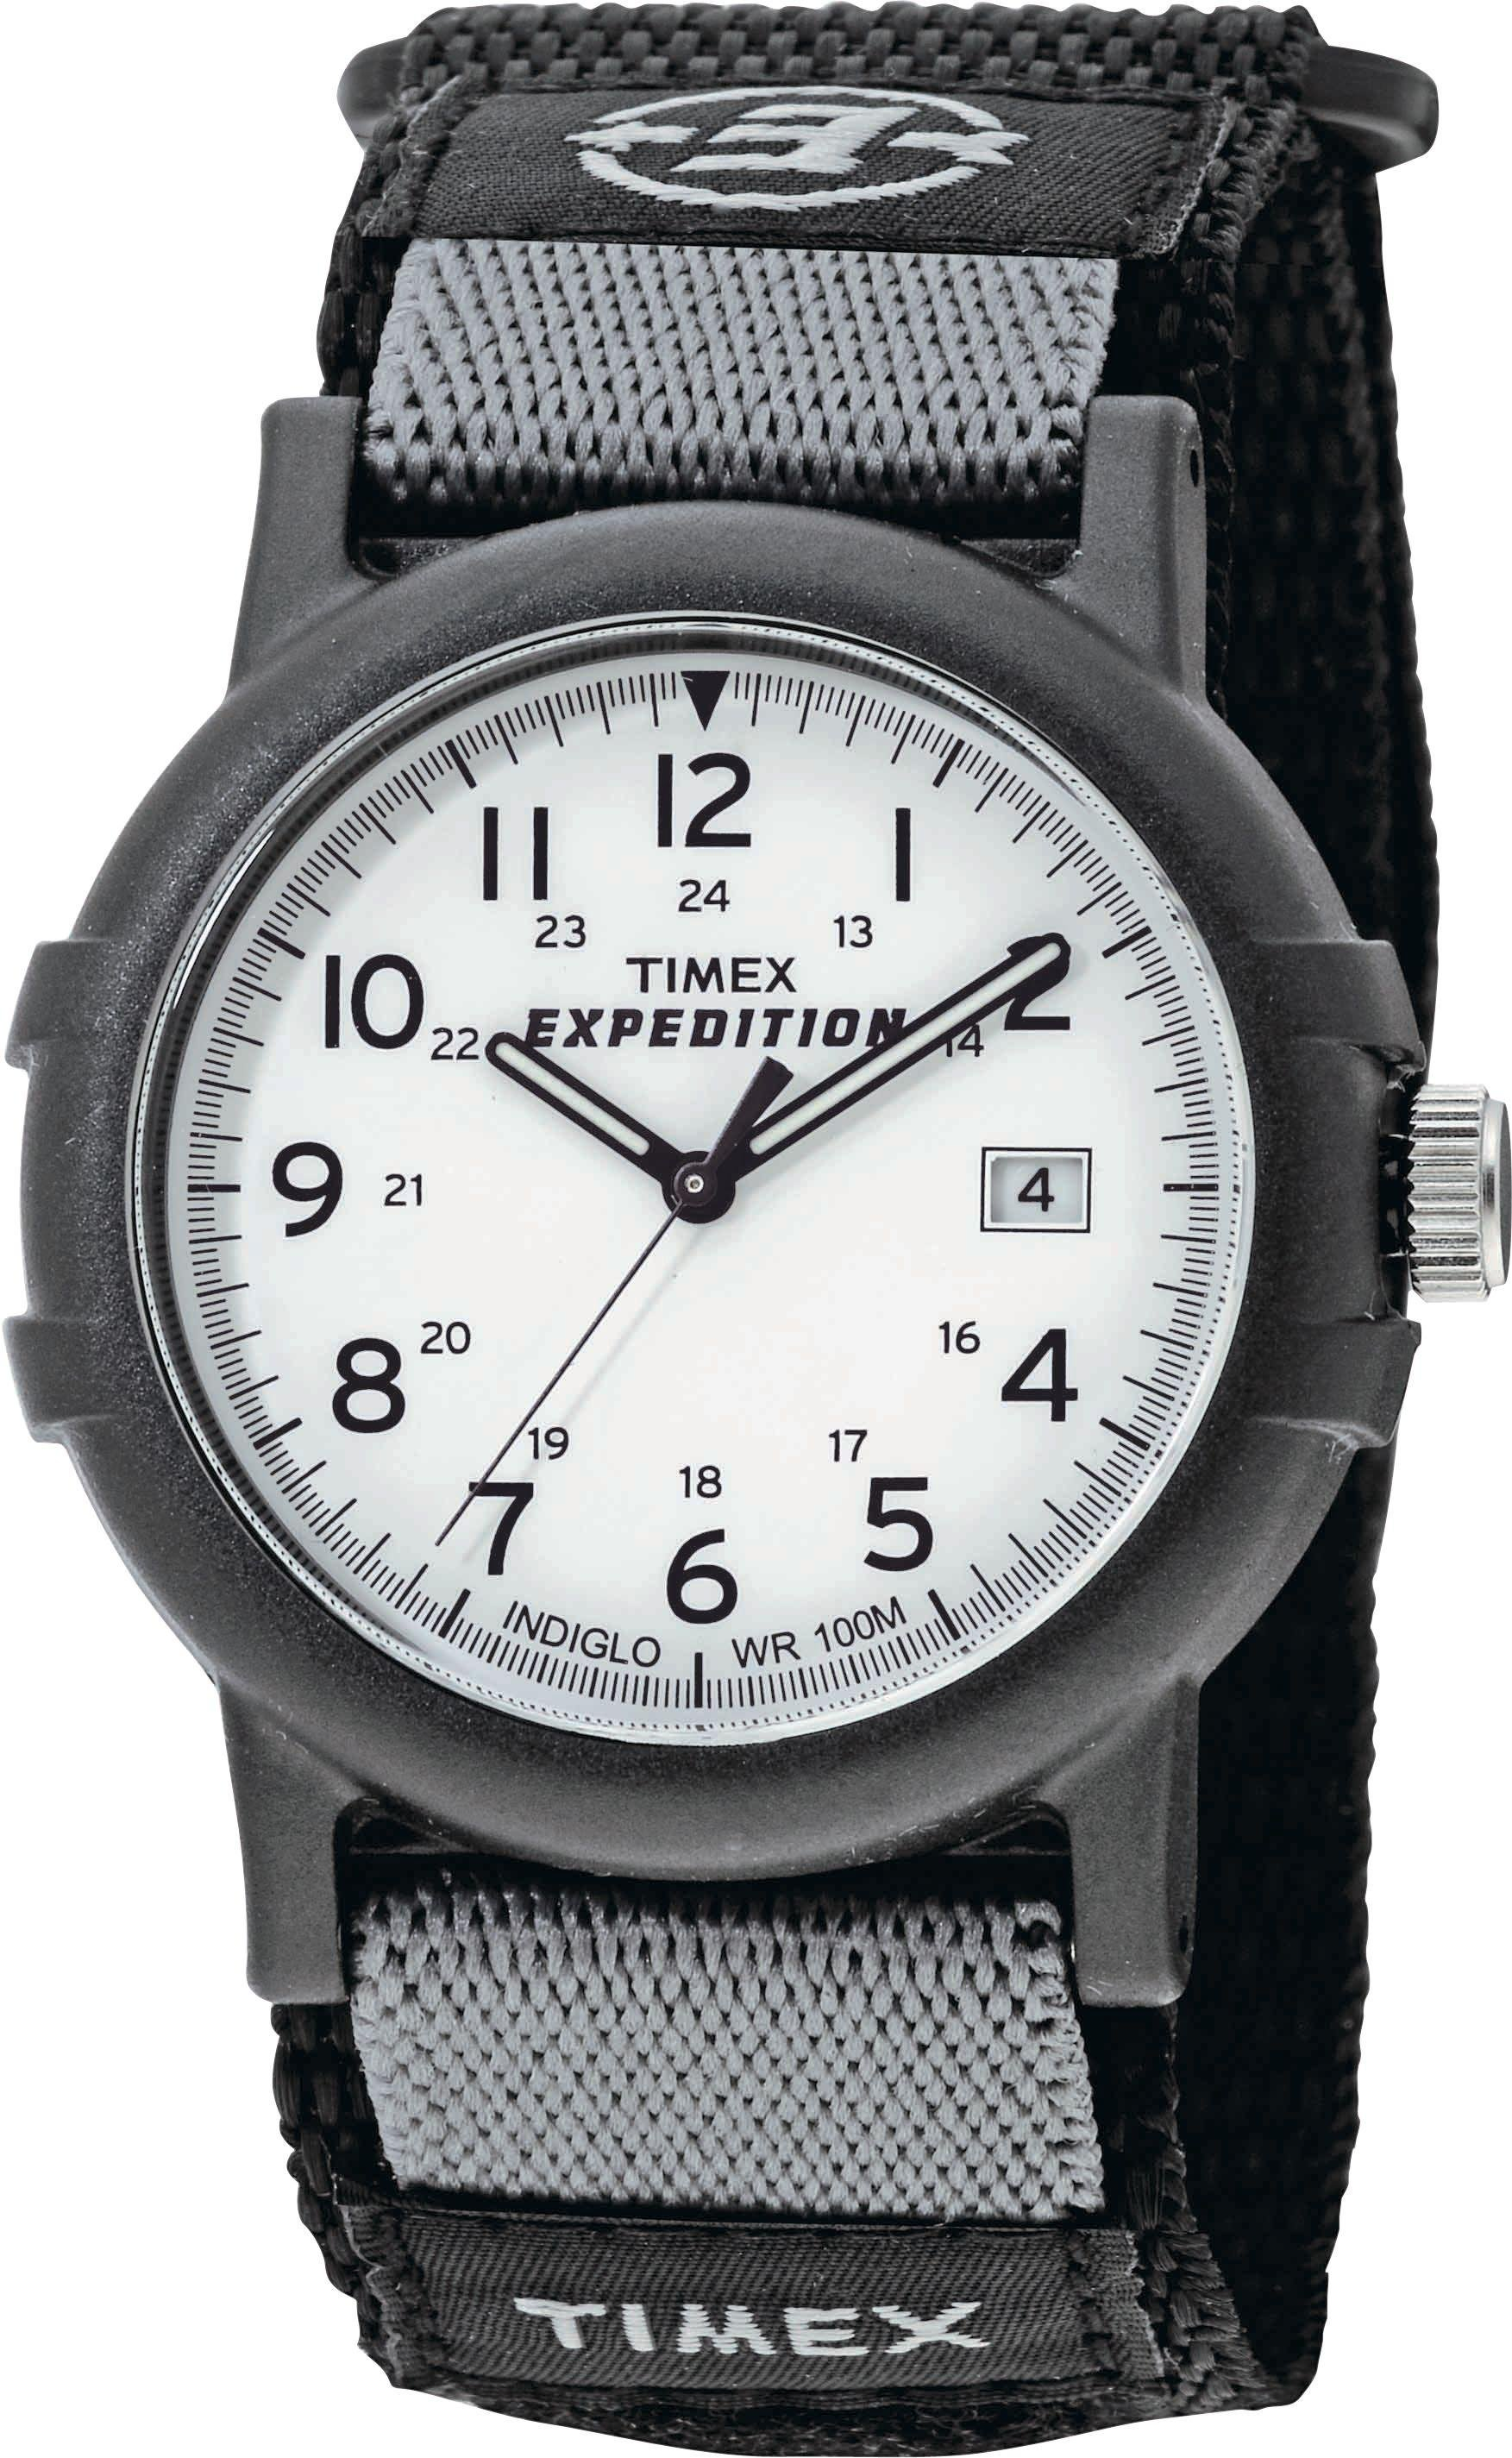 Timex Men's Expedition Black Fabric Strap Camper Watch